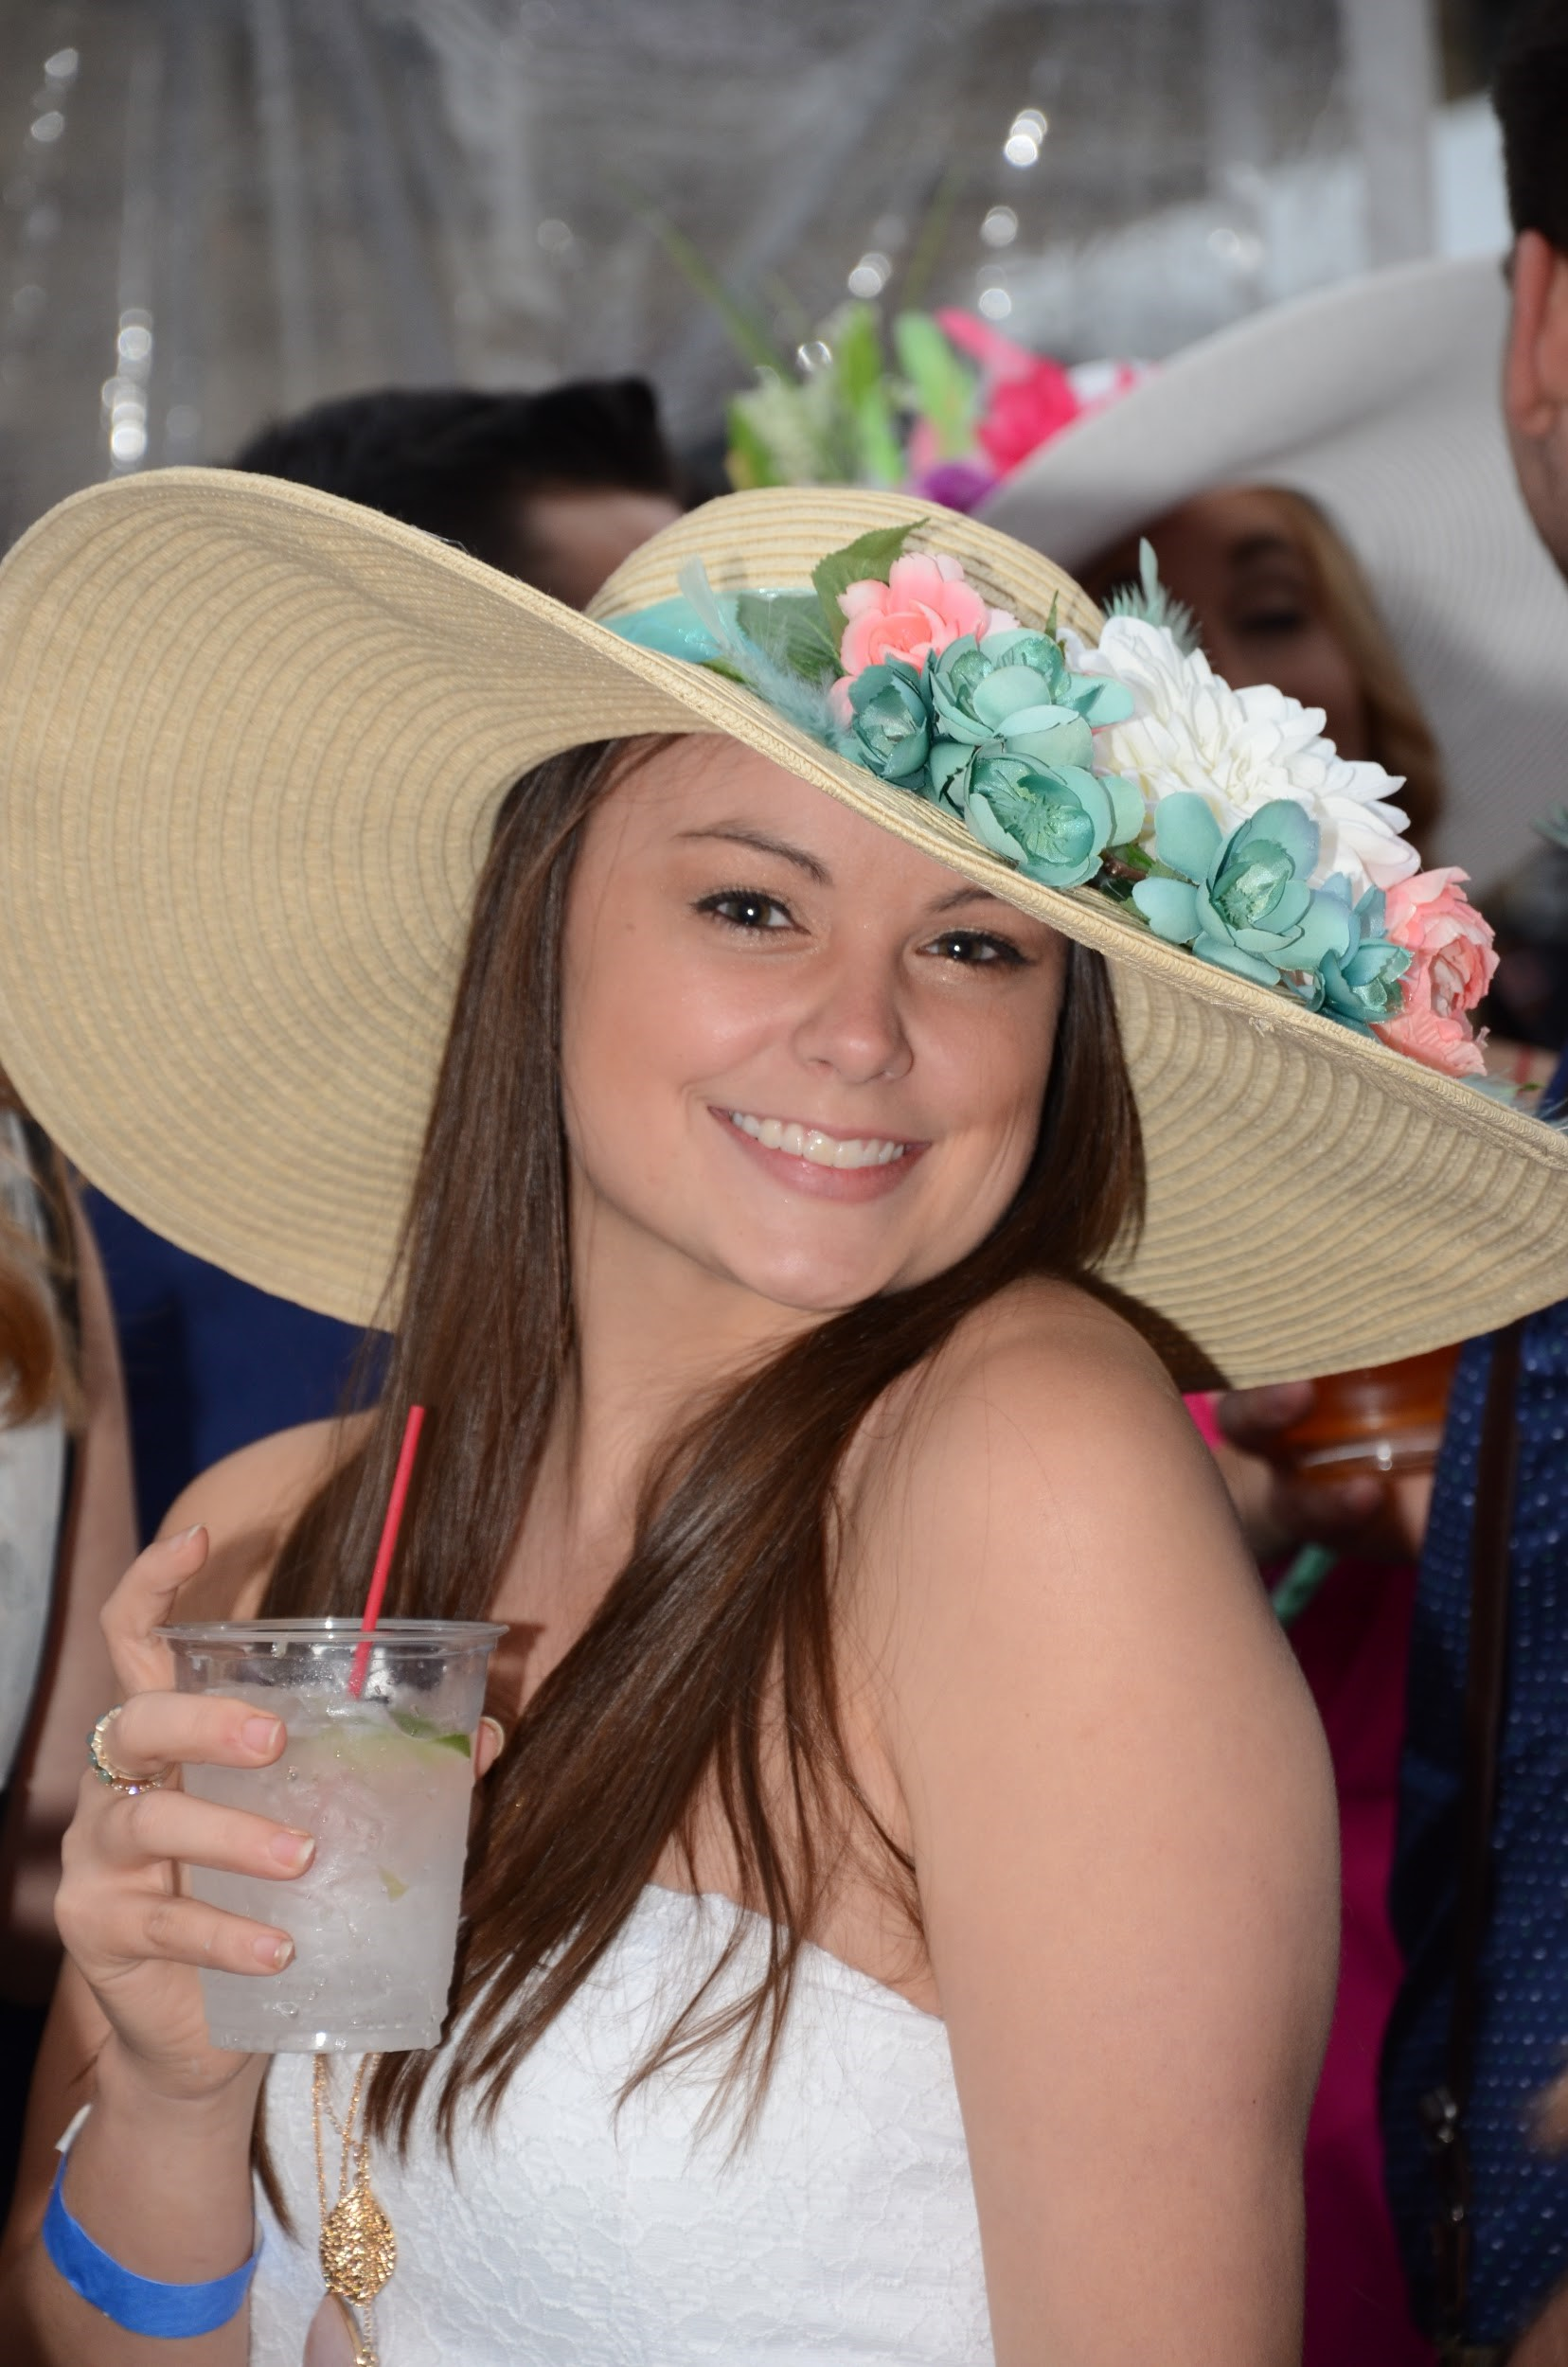 Best Preakness at the Piazza Hat: Unknown